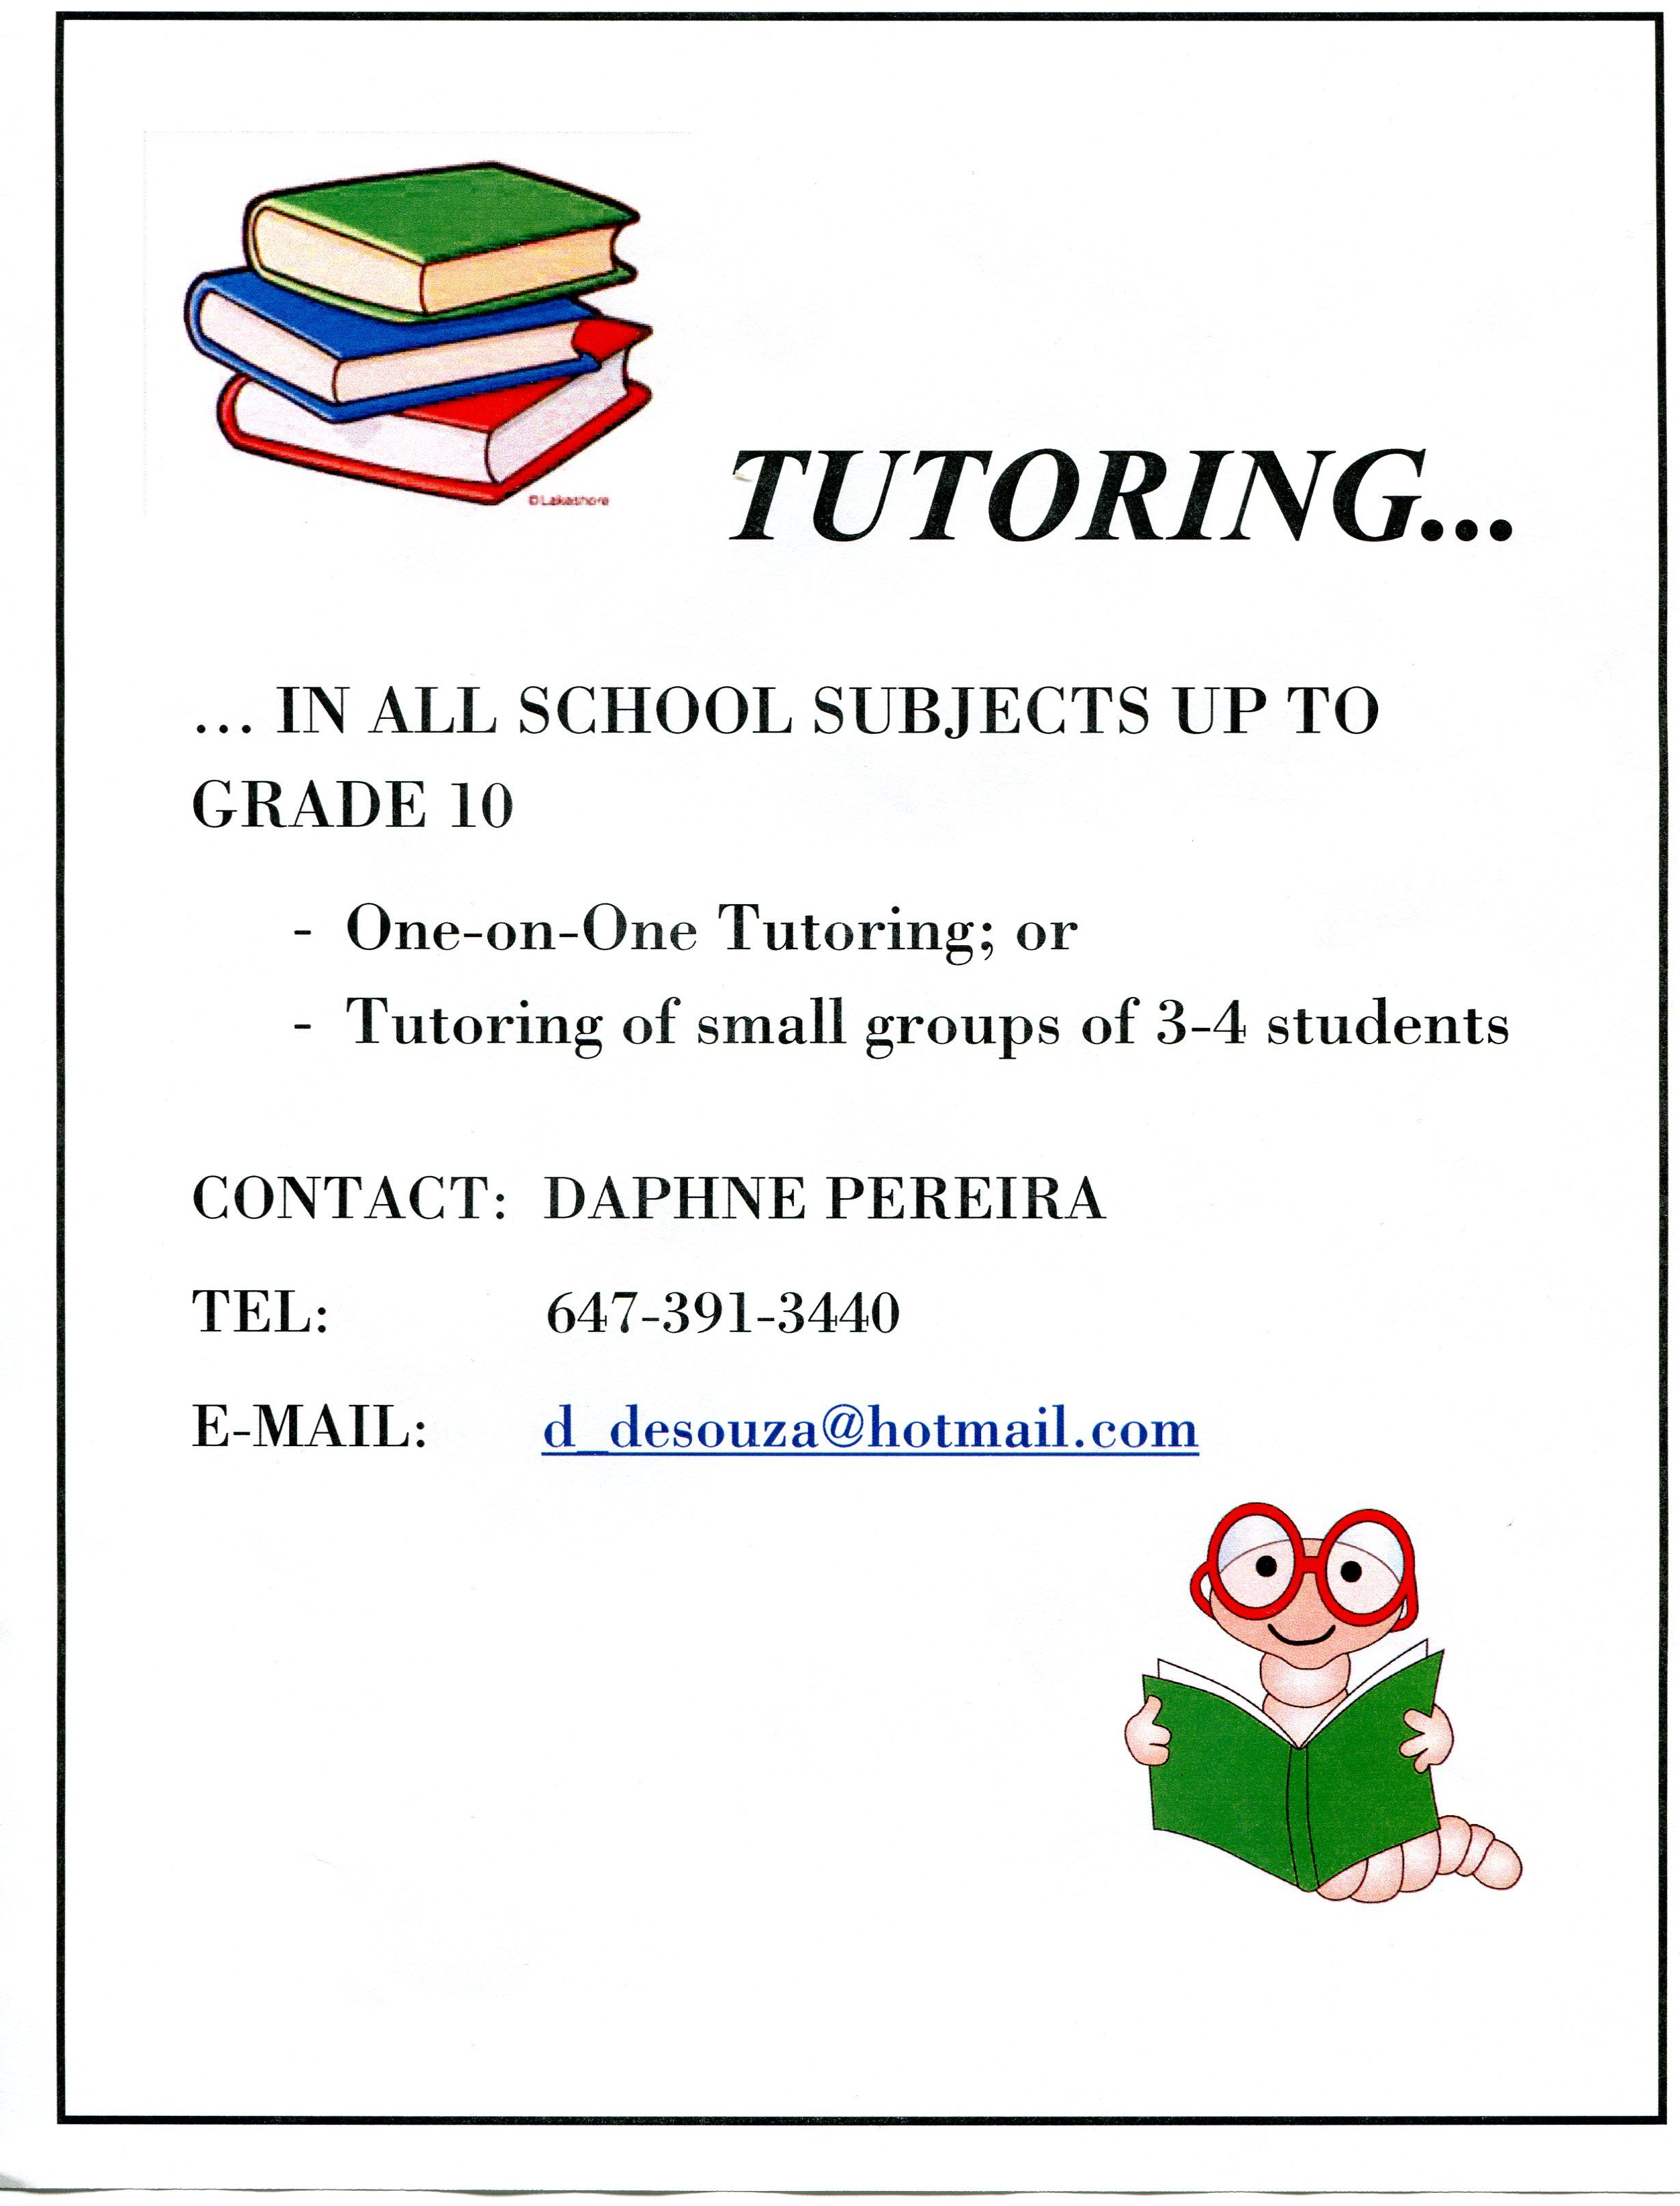 tutor flyer - Google'da Ara | tutoring | Pinterest